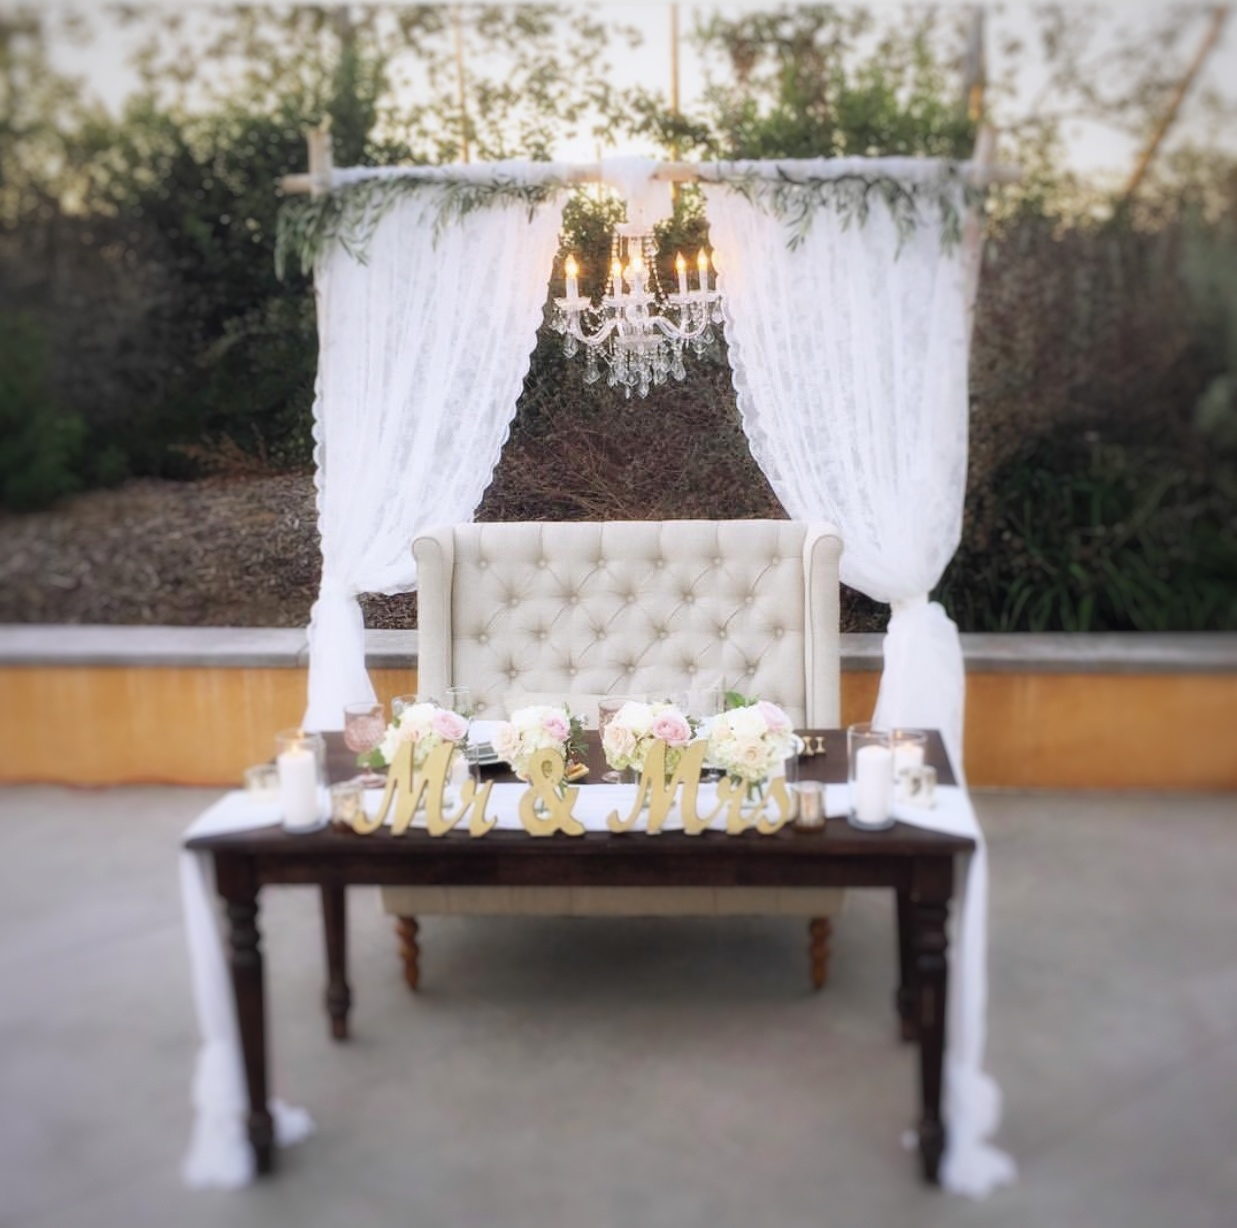 Birch arch lace curtains